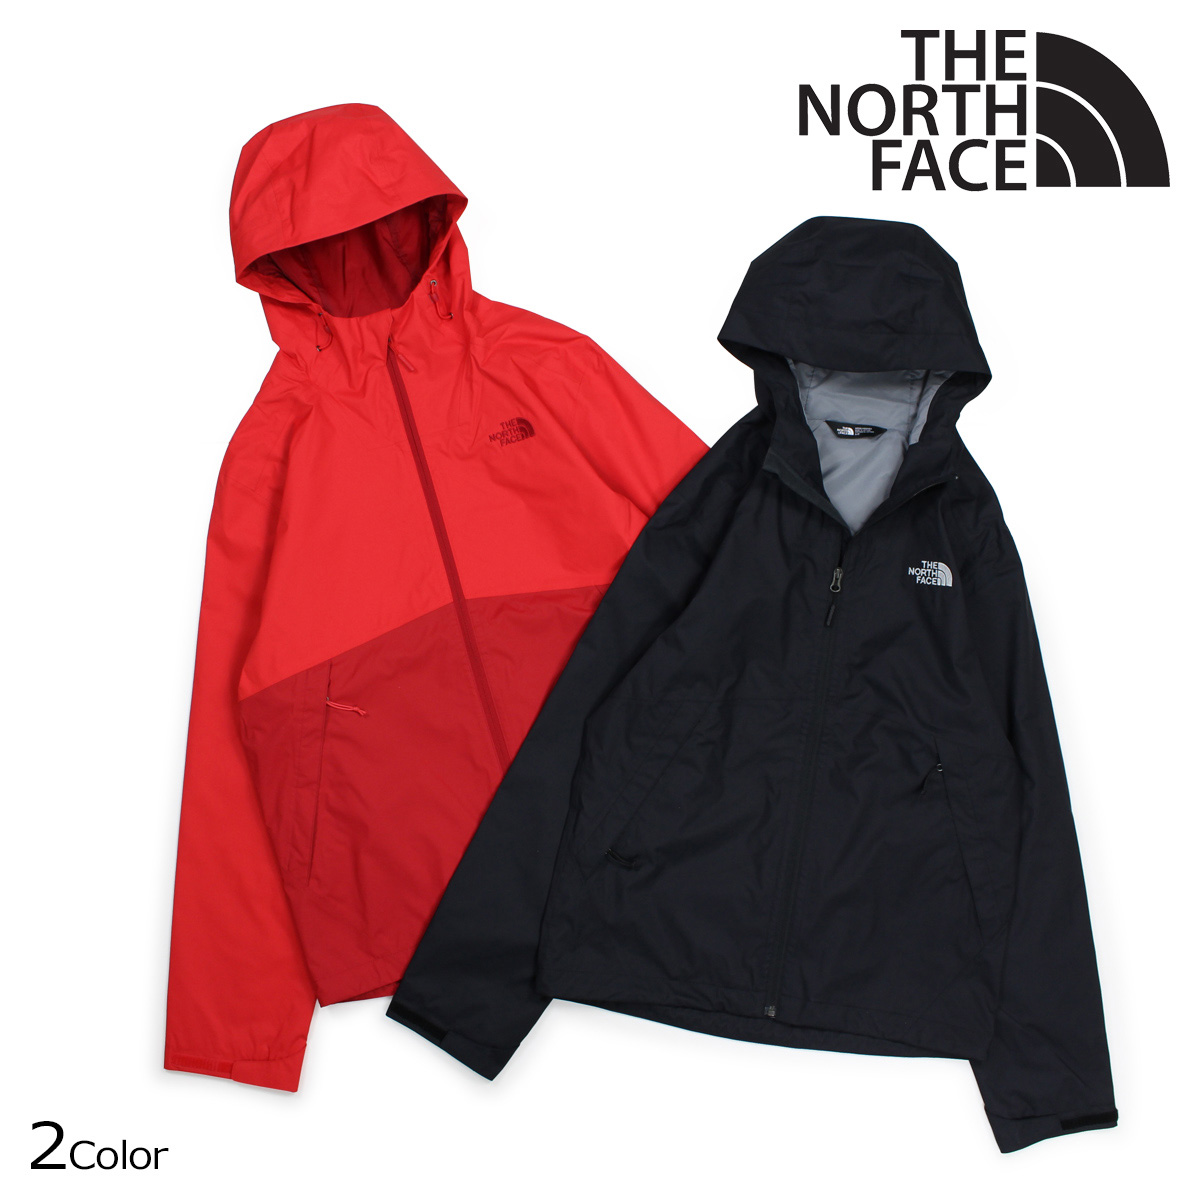 81a0fc60c THE NORTH FACE North Face jacket mountain parka men MENS MILLERTON JACKET  black black red red NF0A33Q6